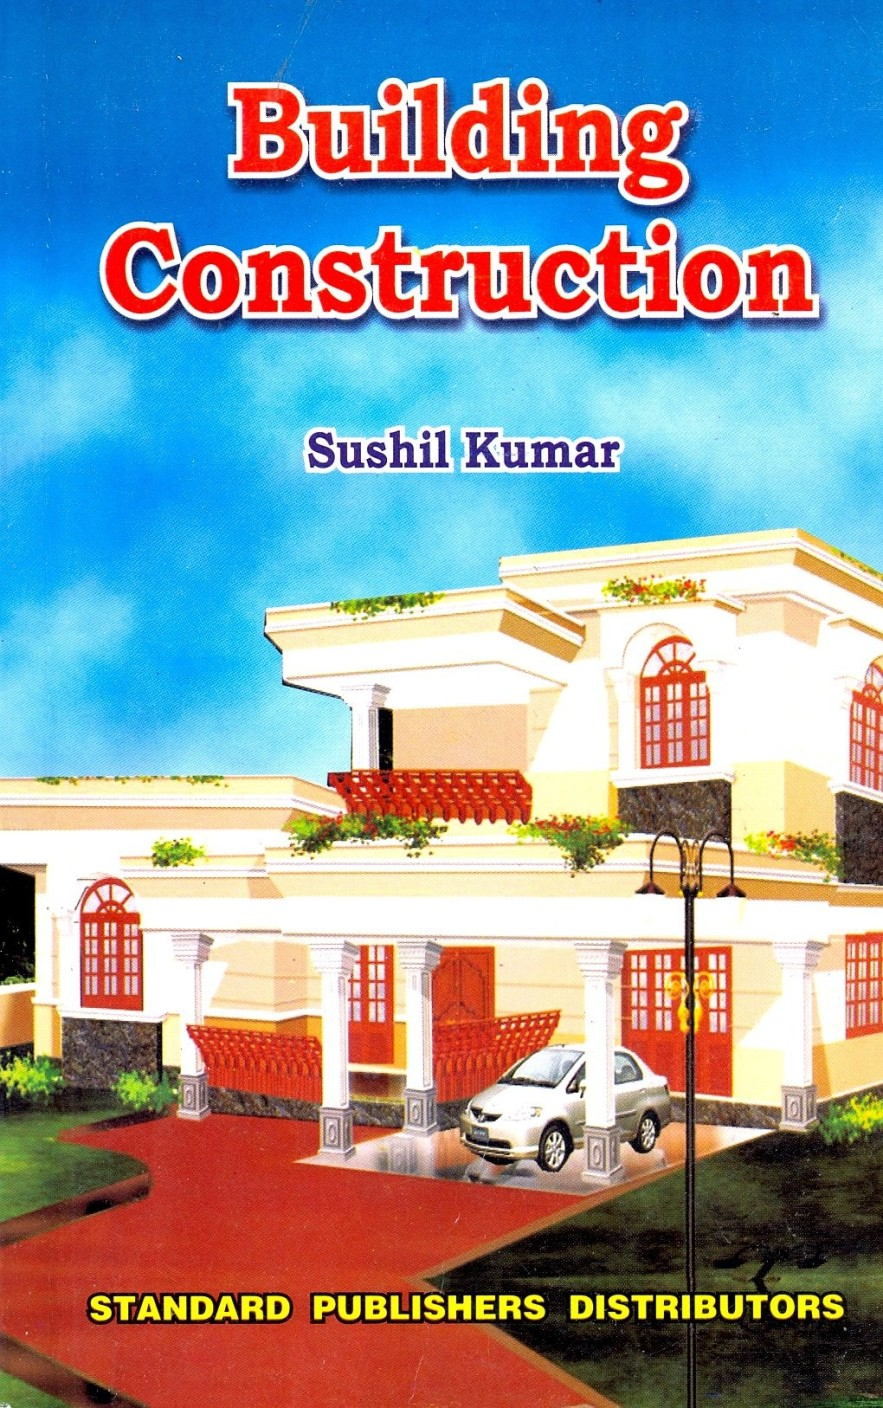 Building Construction by Sushil Kumar - Goodreads